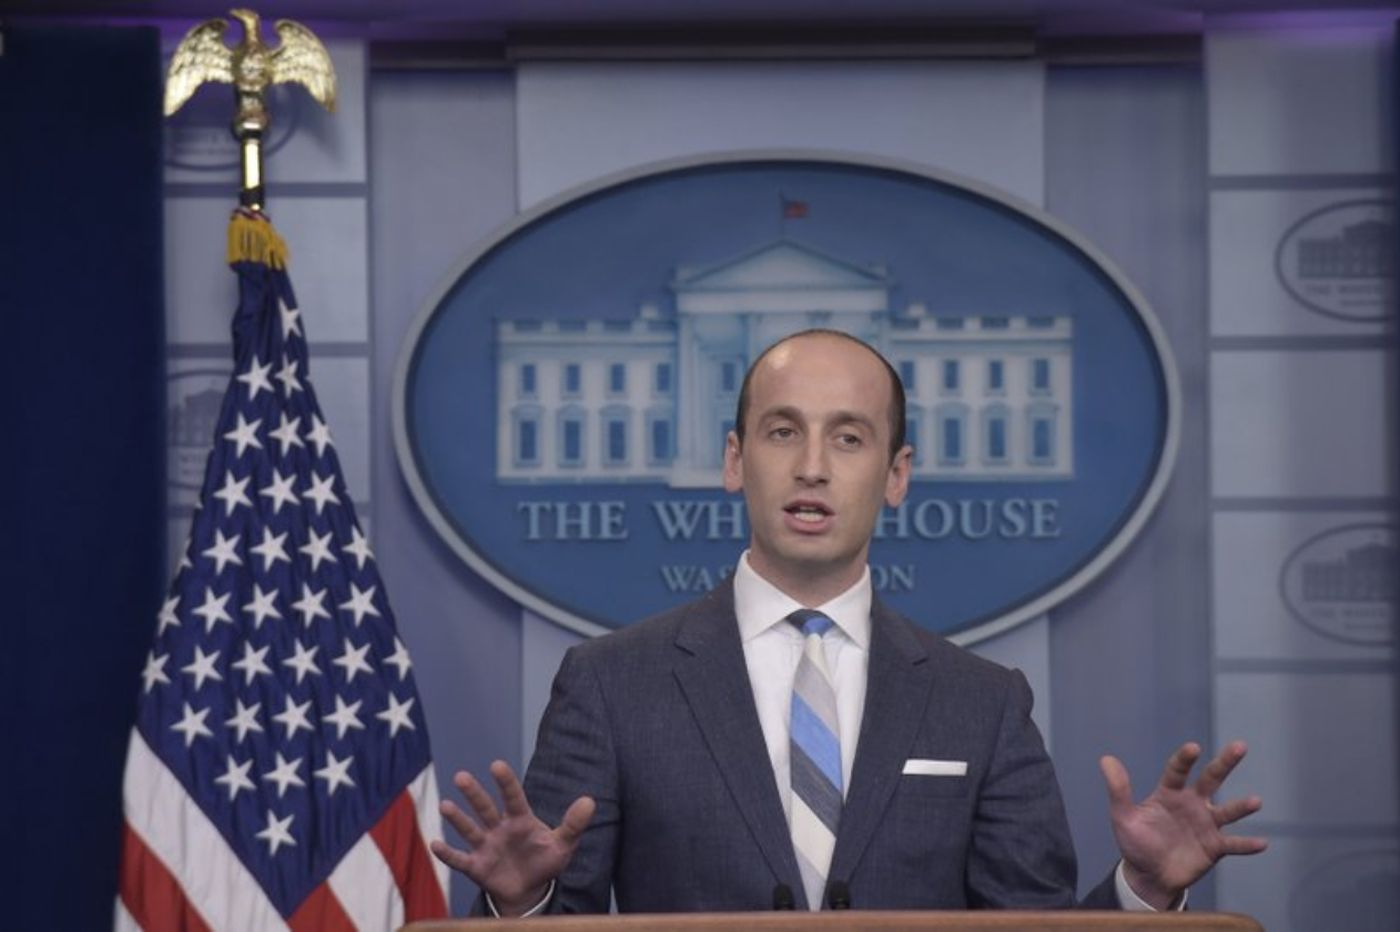 Stephen Miller's uncle, a Philly-area resident, calls nephew an 'immigration hypocrite'